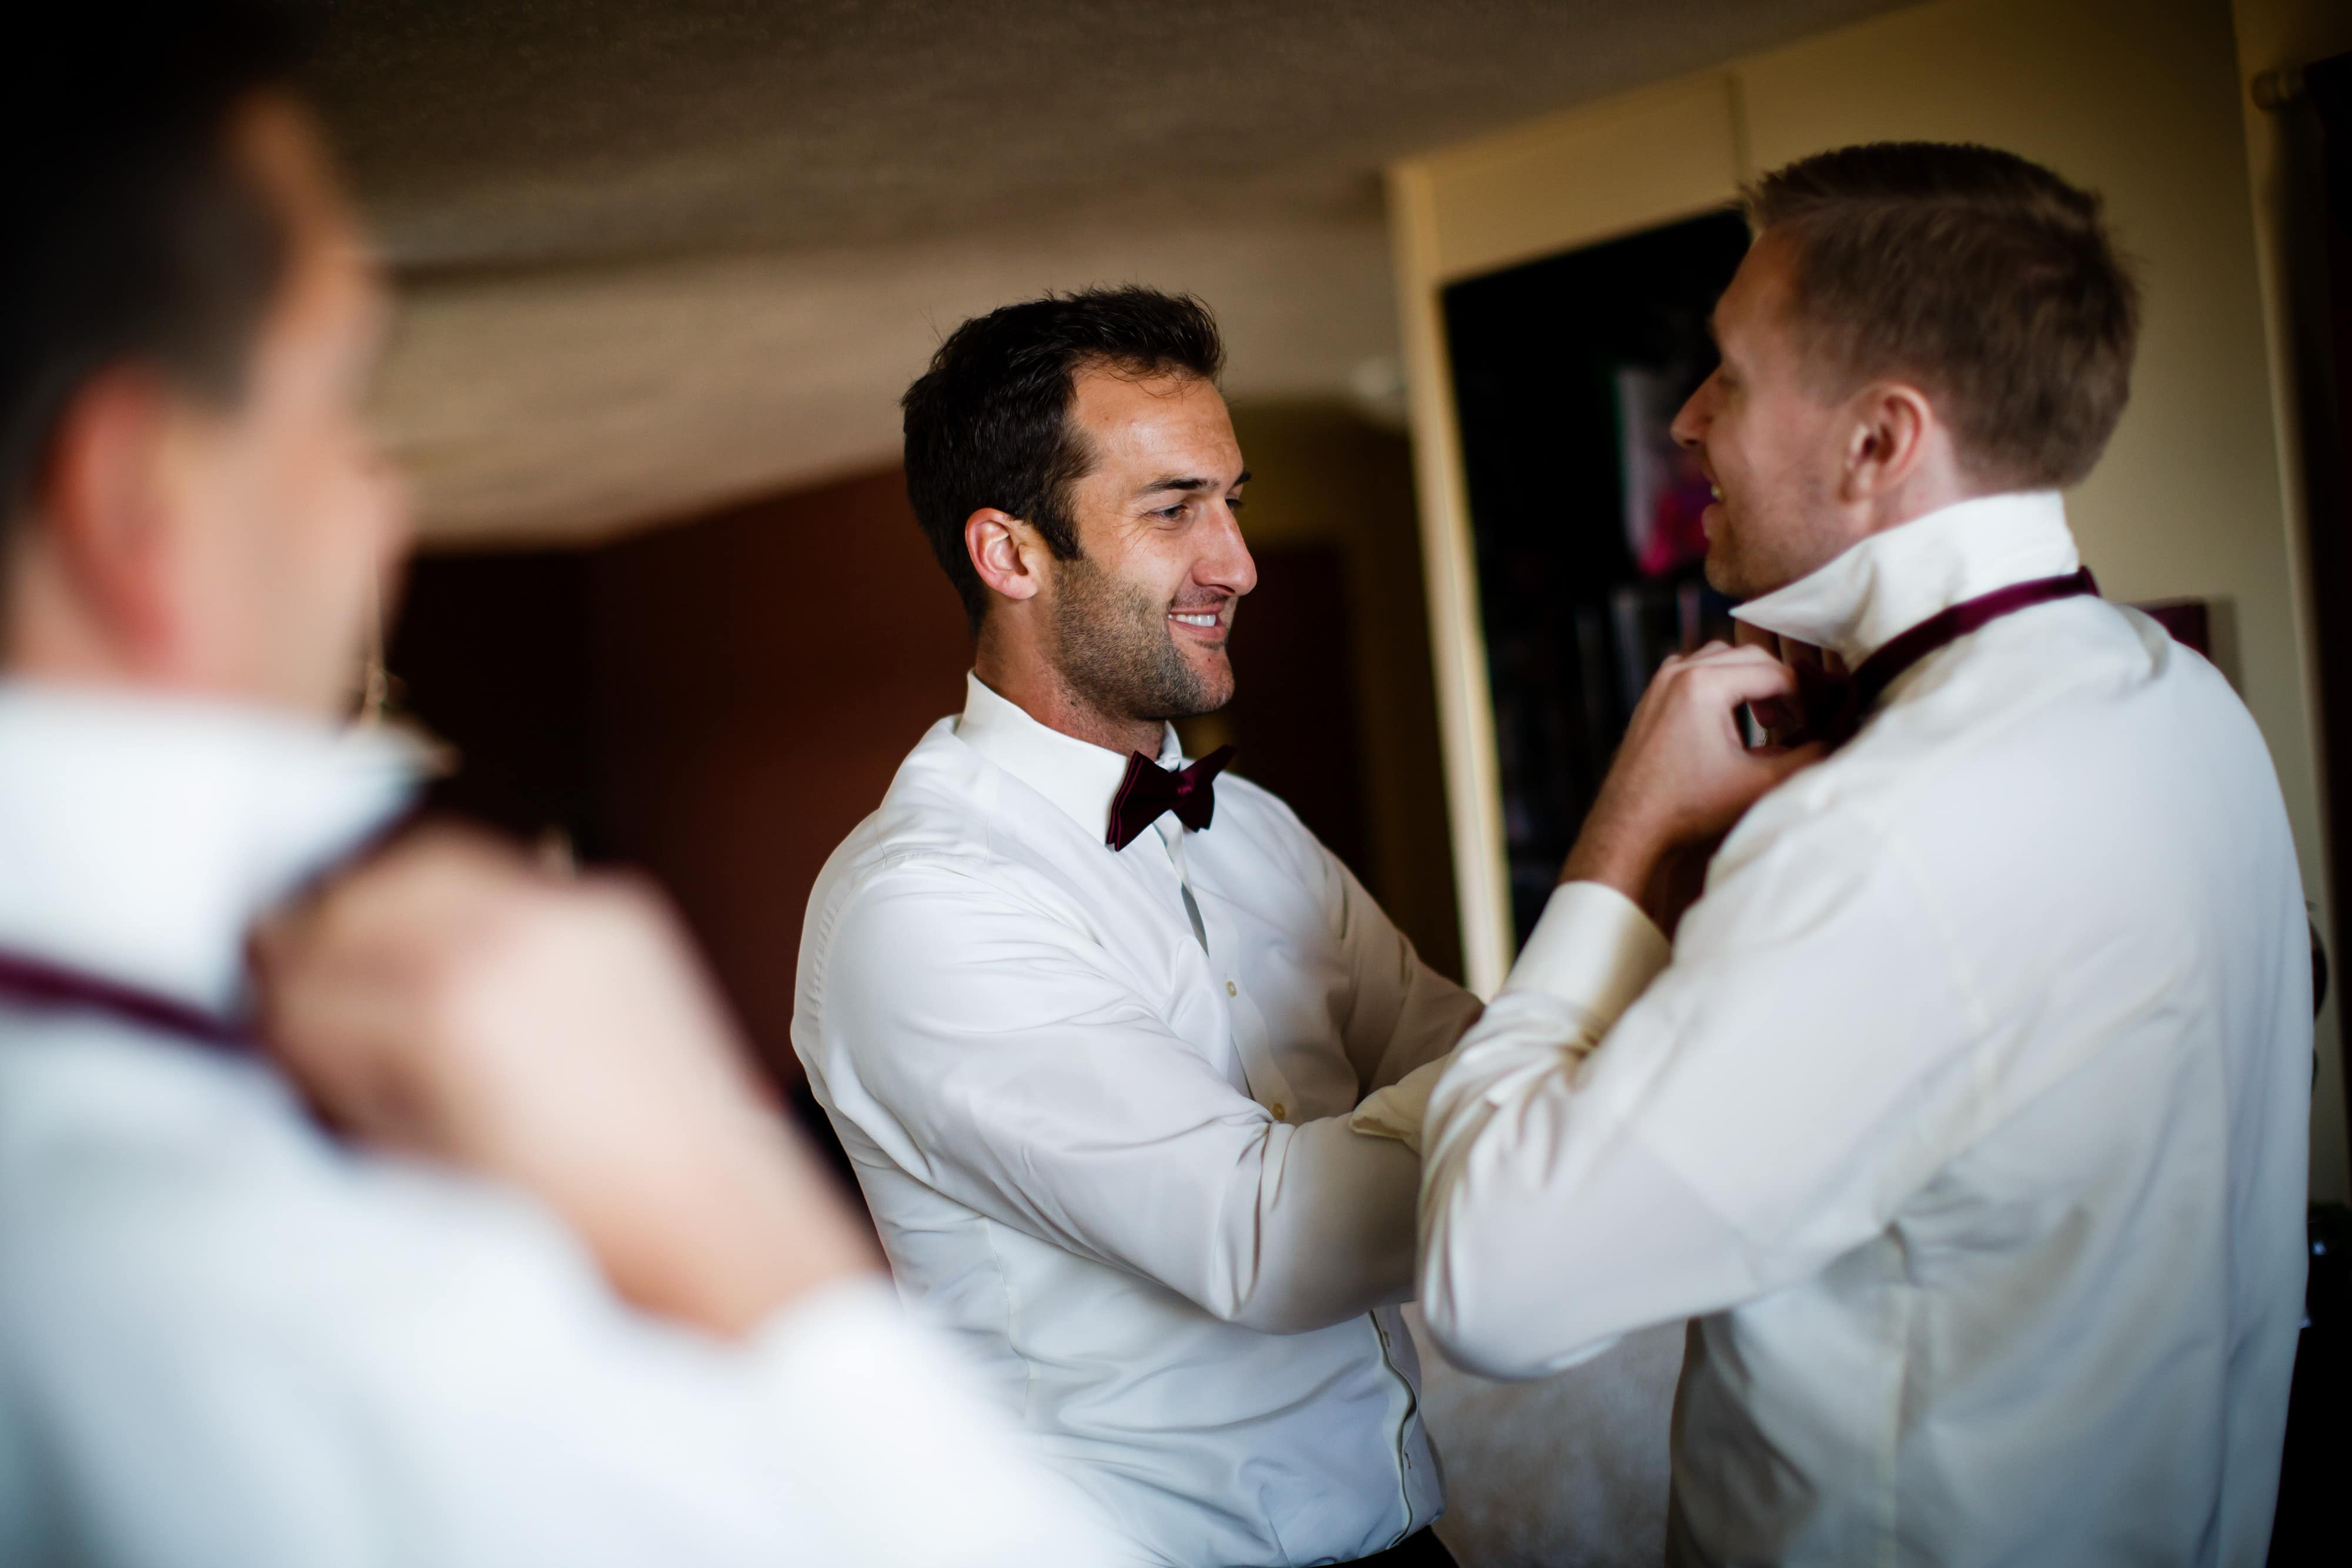 A groomsman helps Ryan with his tie